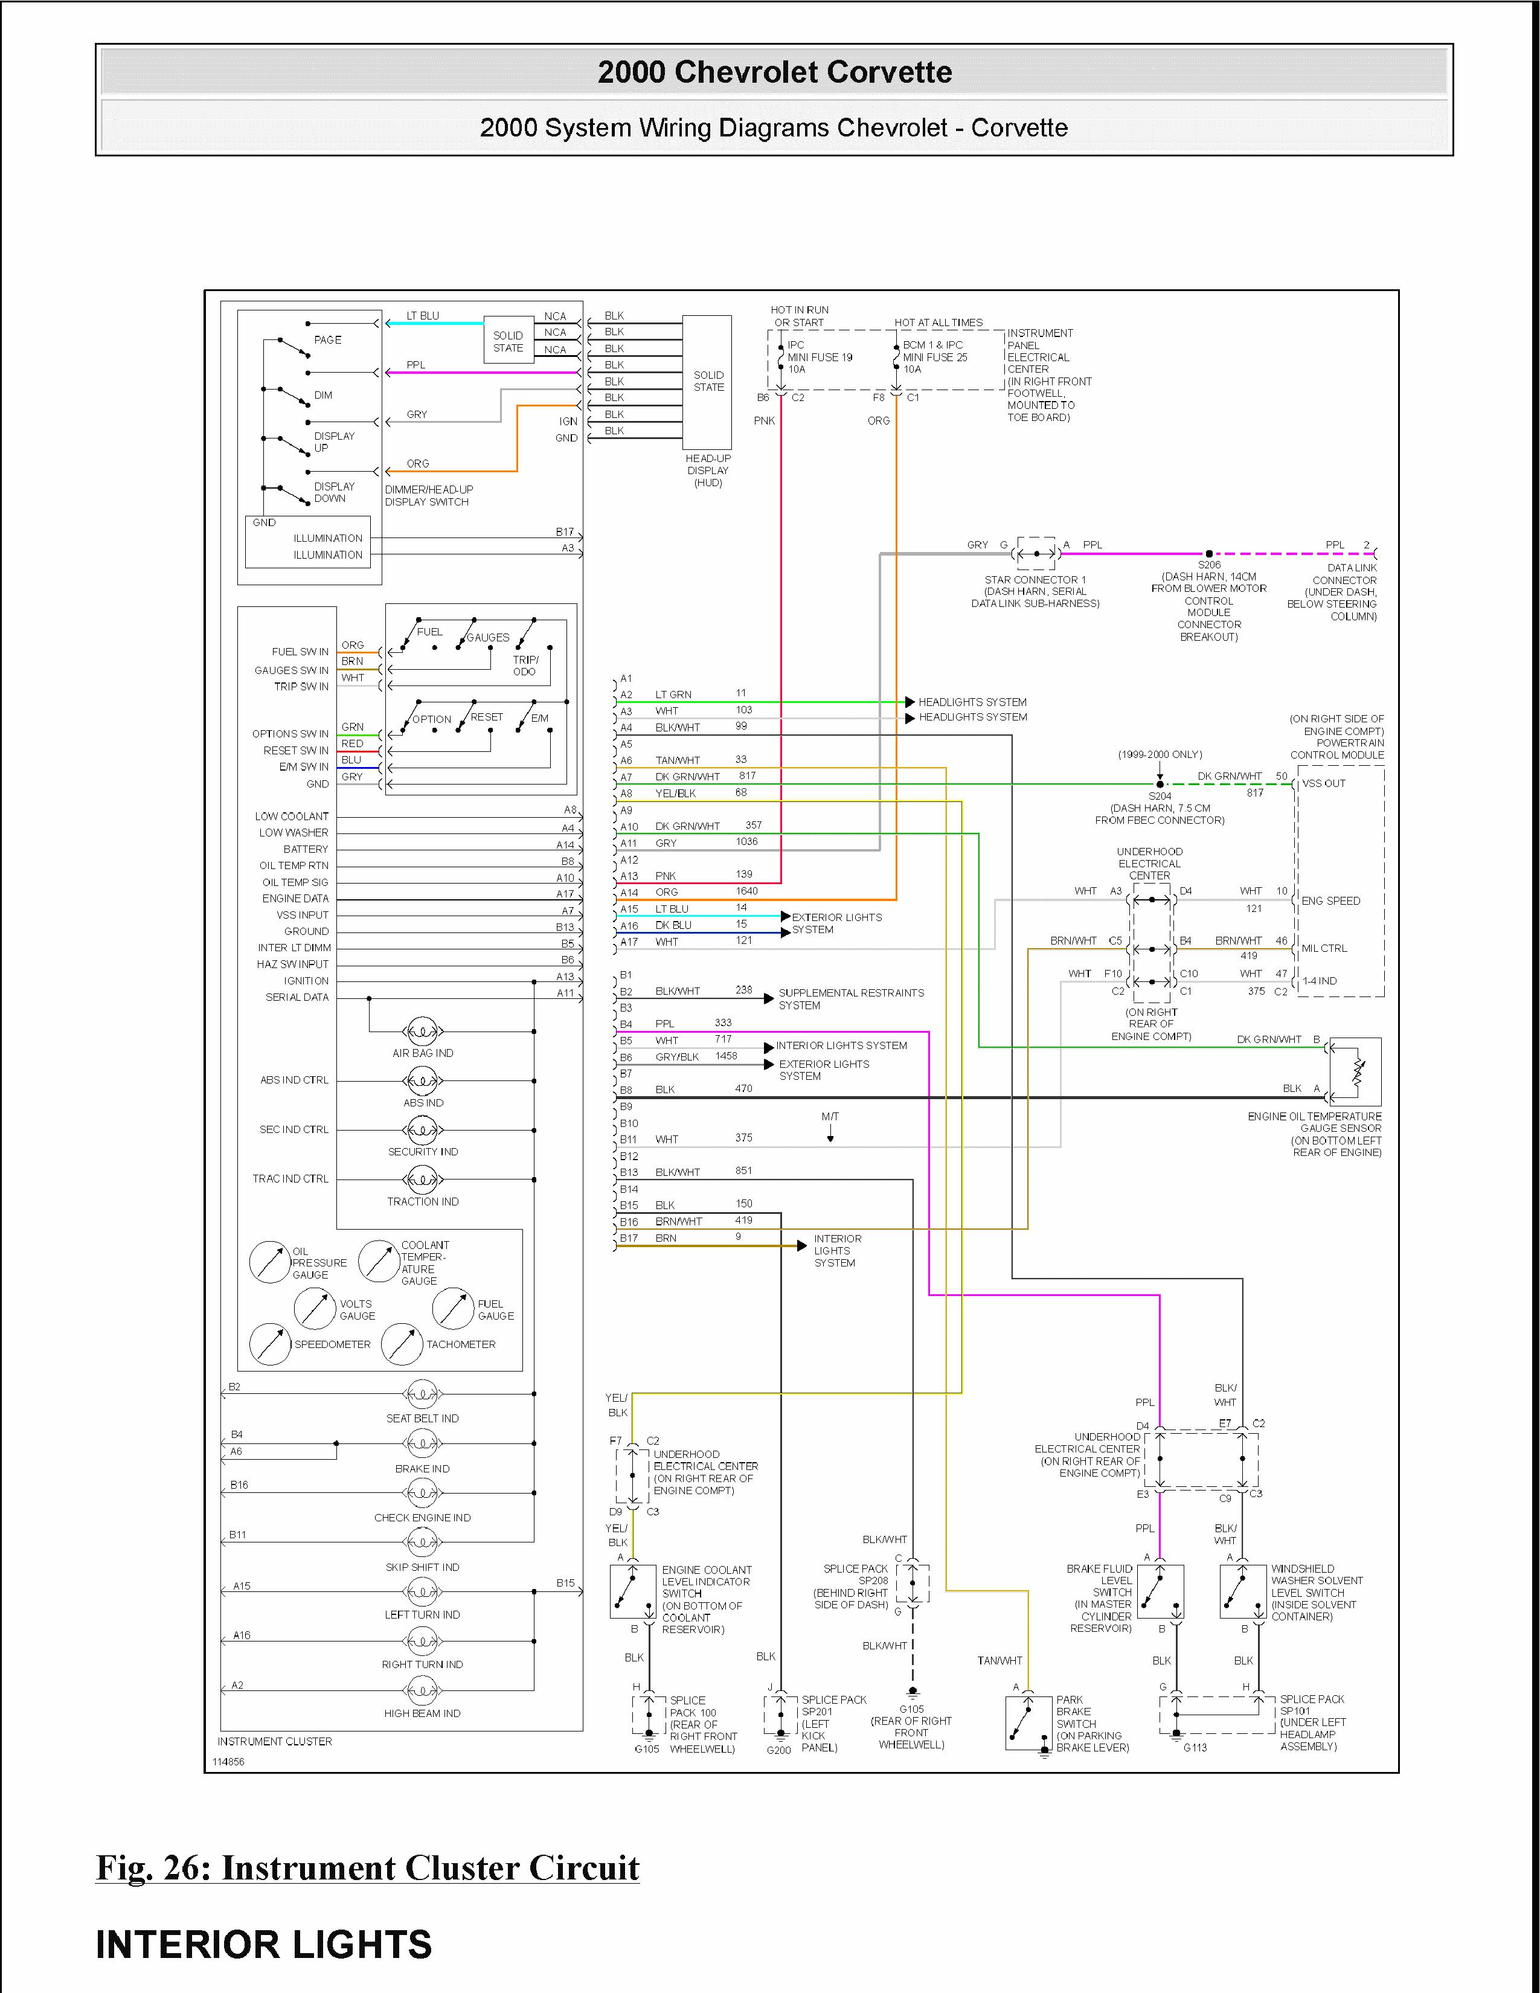 here is the oem wiring diagram for the cluster